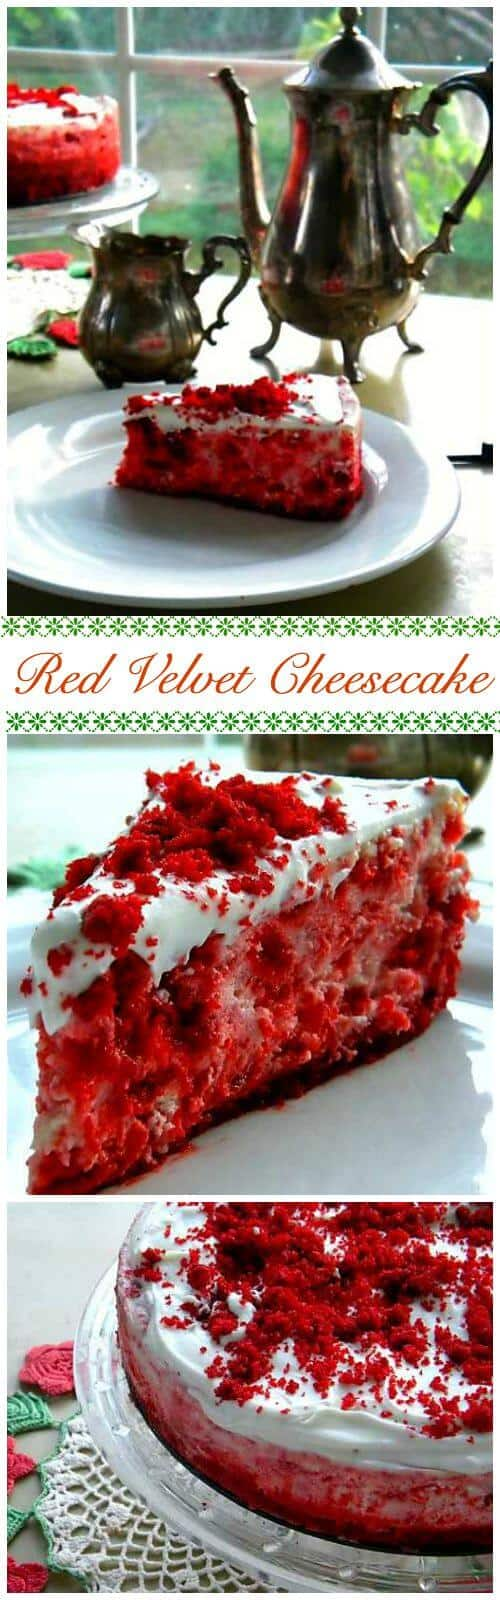 Red Velvet Cheesecake is not just beautiful - it's one of the creamiest, most flavorful cheesecakes you'll ever put in your mouth. Rich vanilla cheesecake surrounds pieces of real red velvet cake. So good! From RestlessChipotle.com